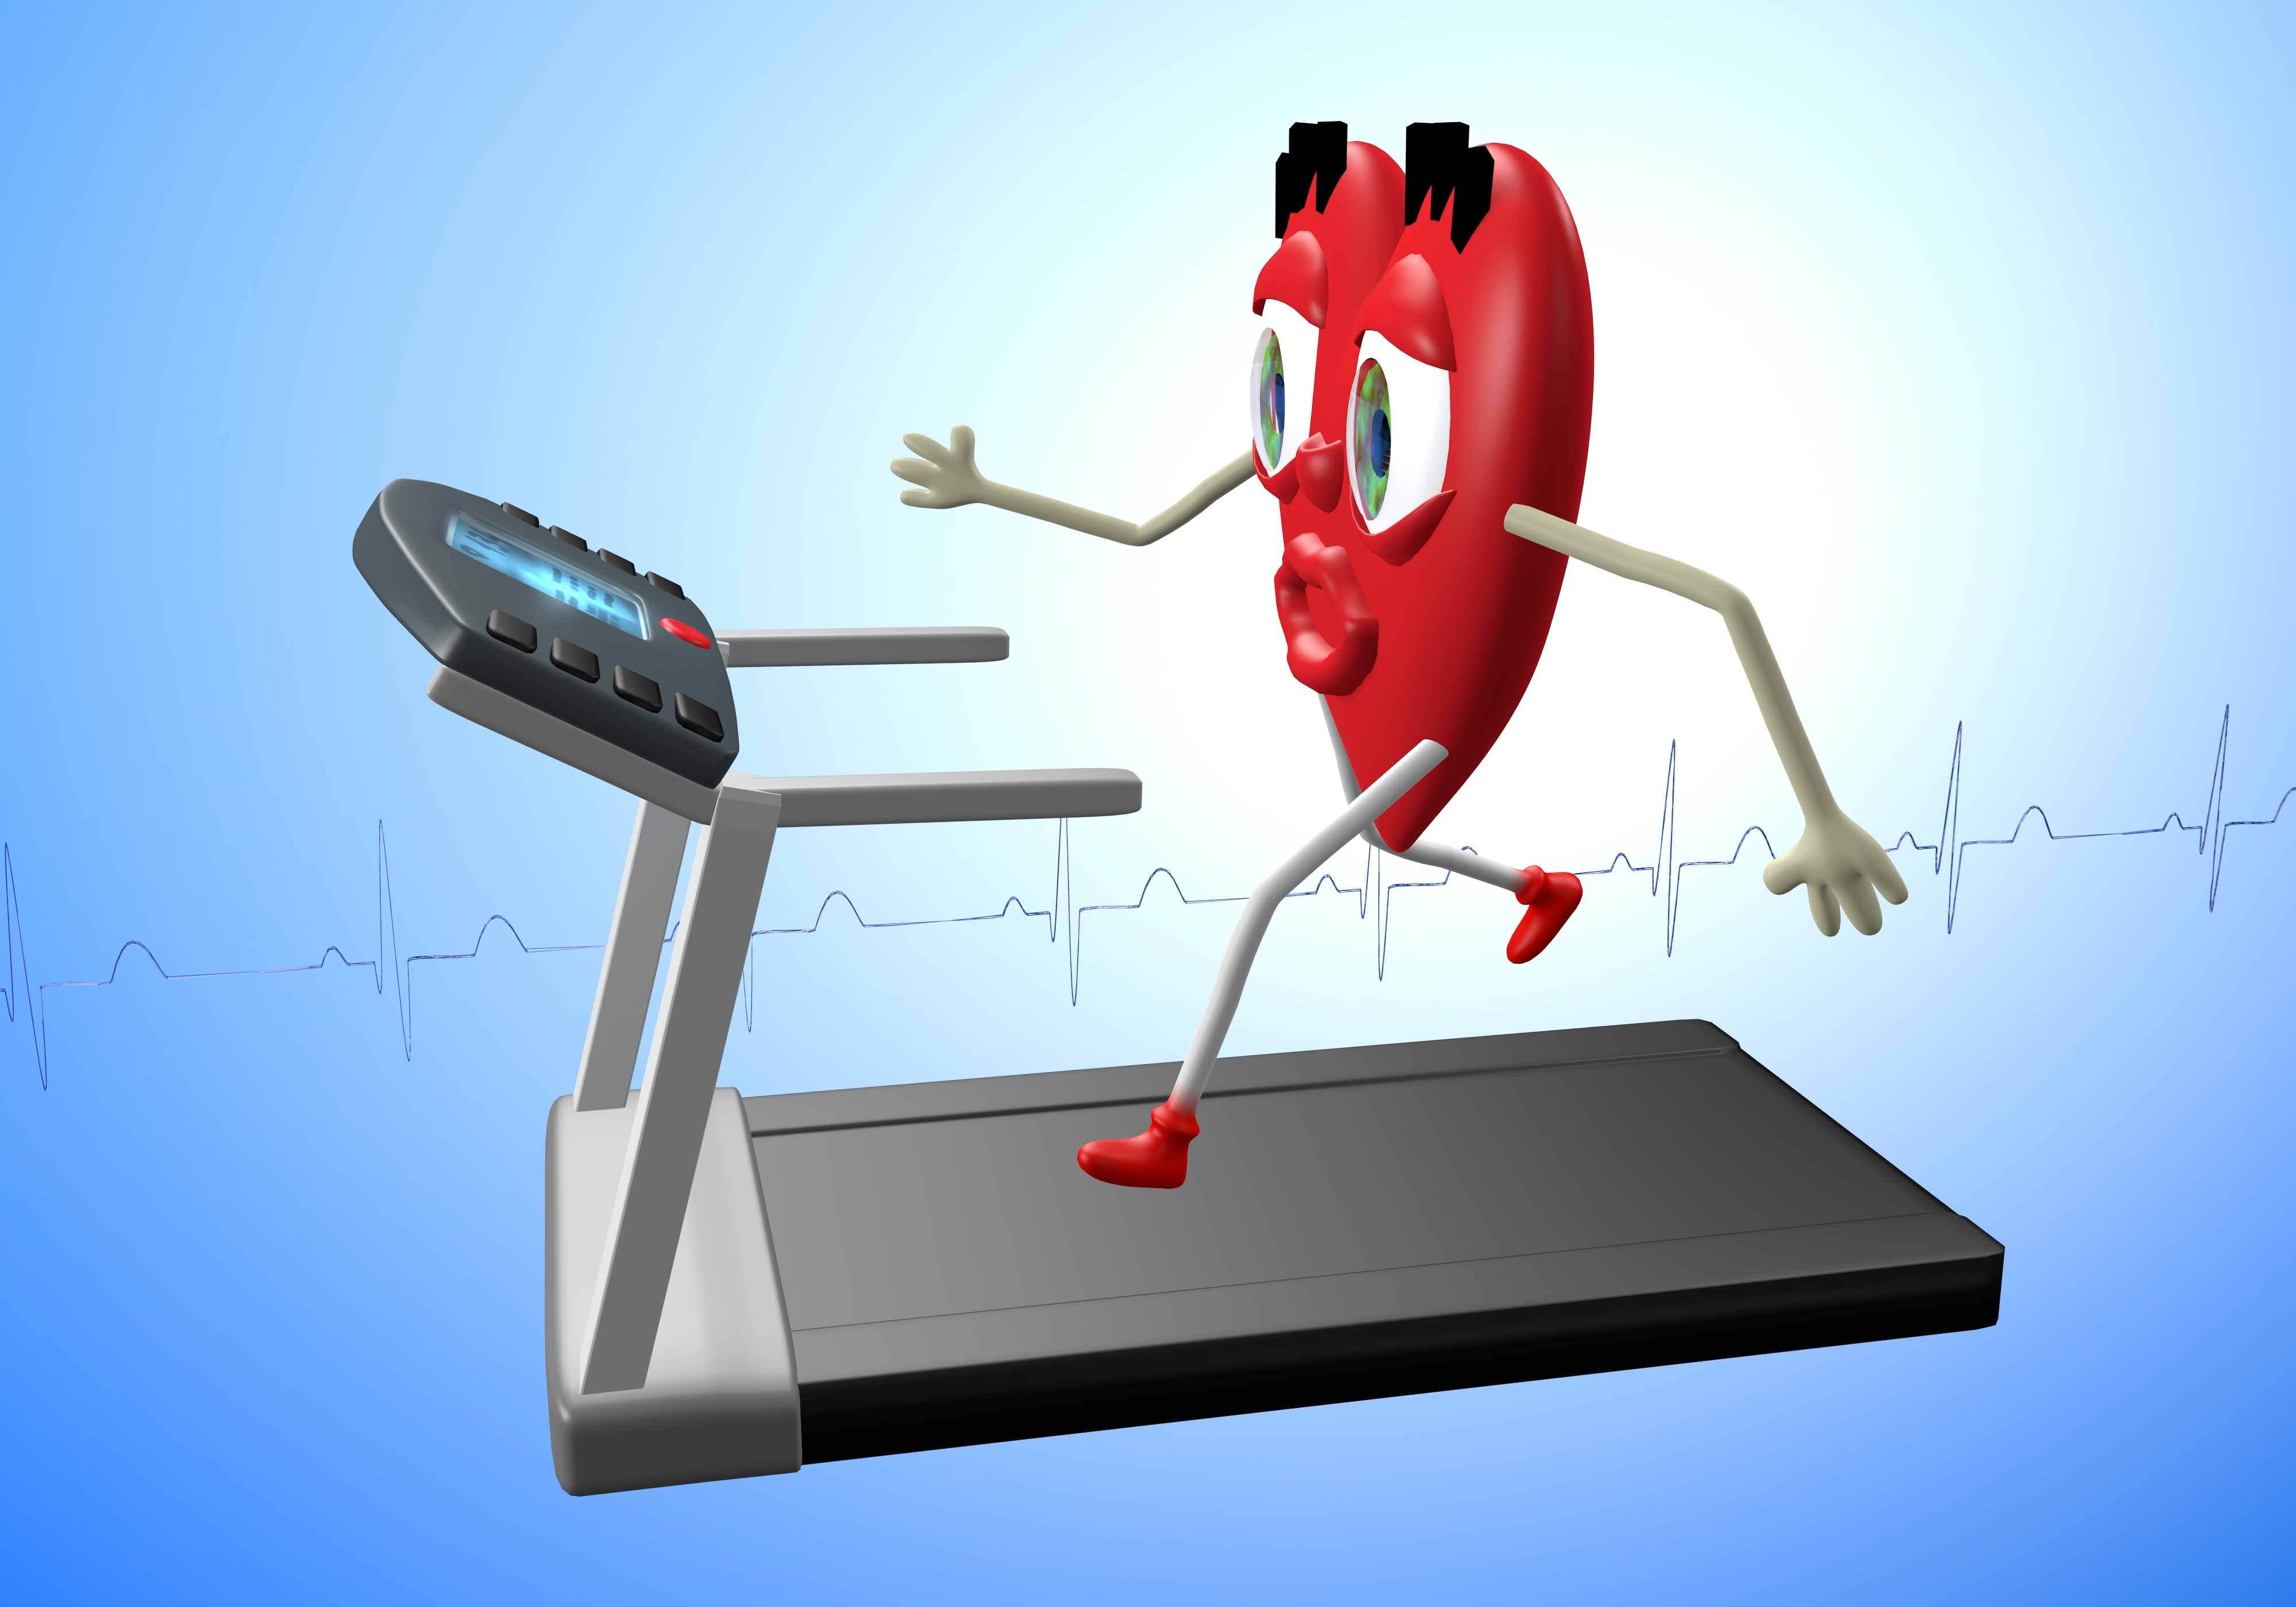 Heart character exercising on treadmill, concept of heart health, cardio exercise, fitness